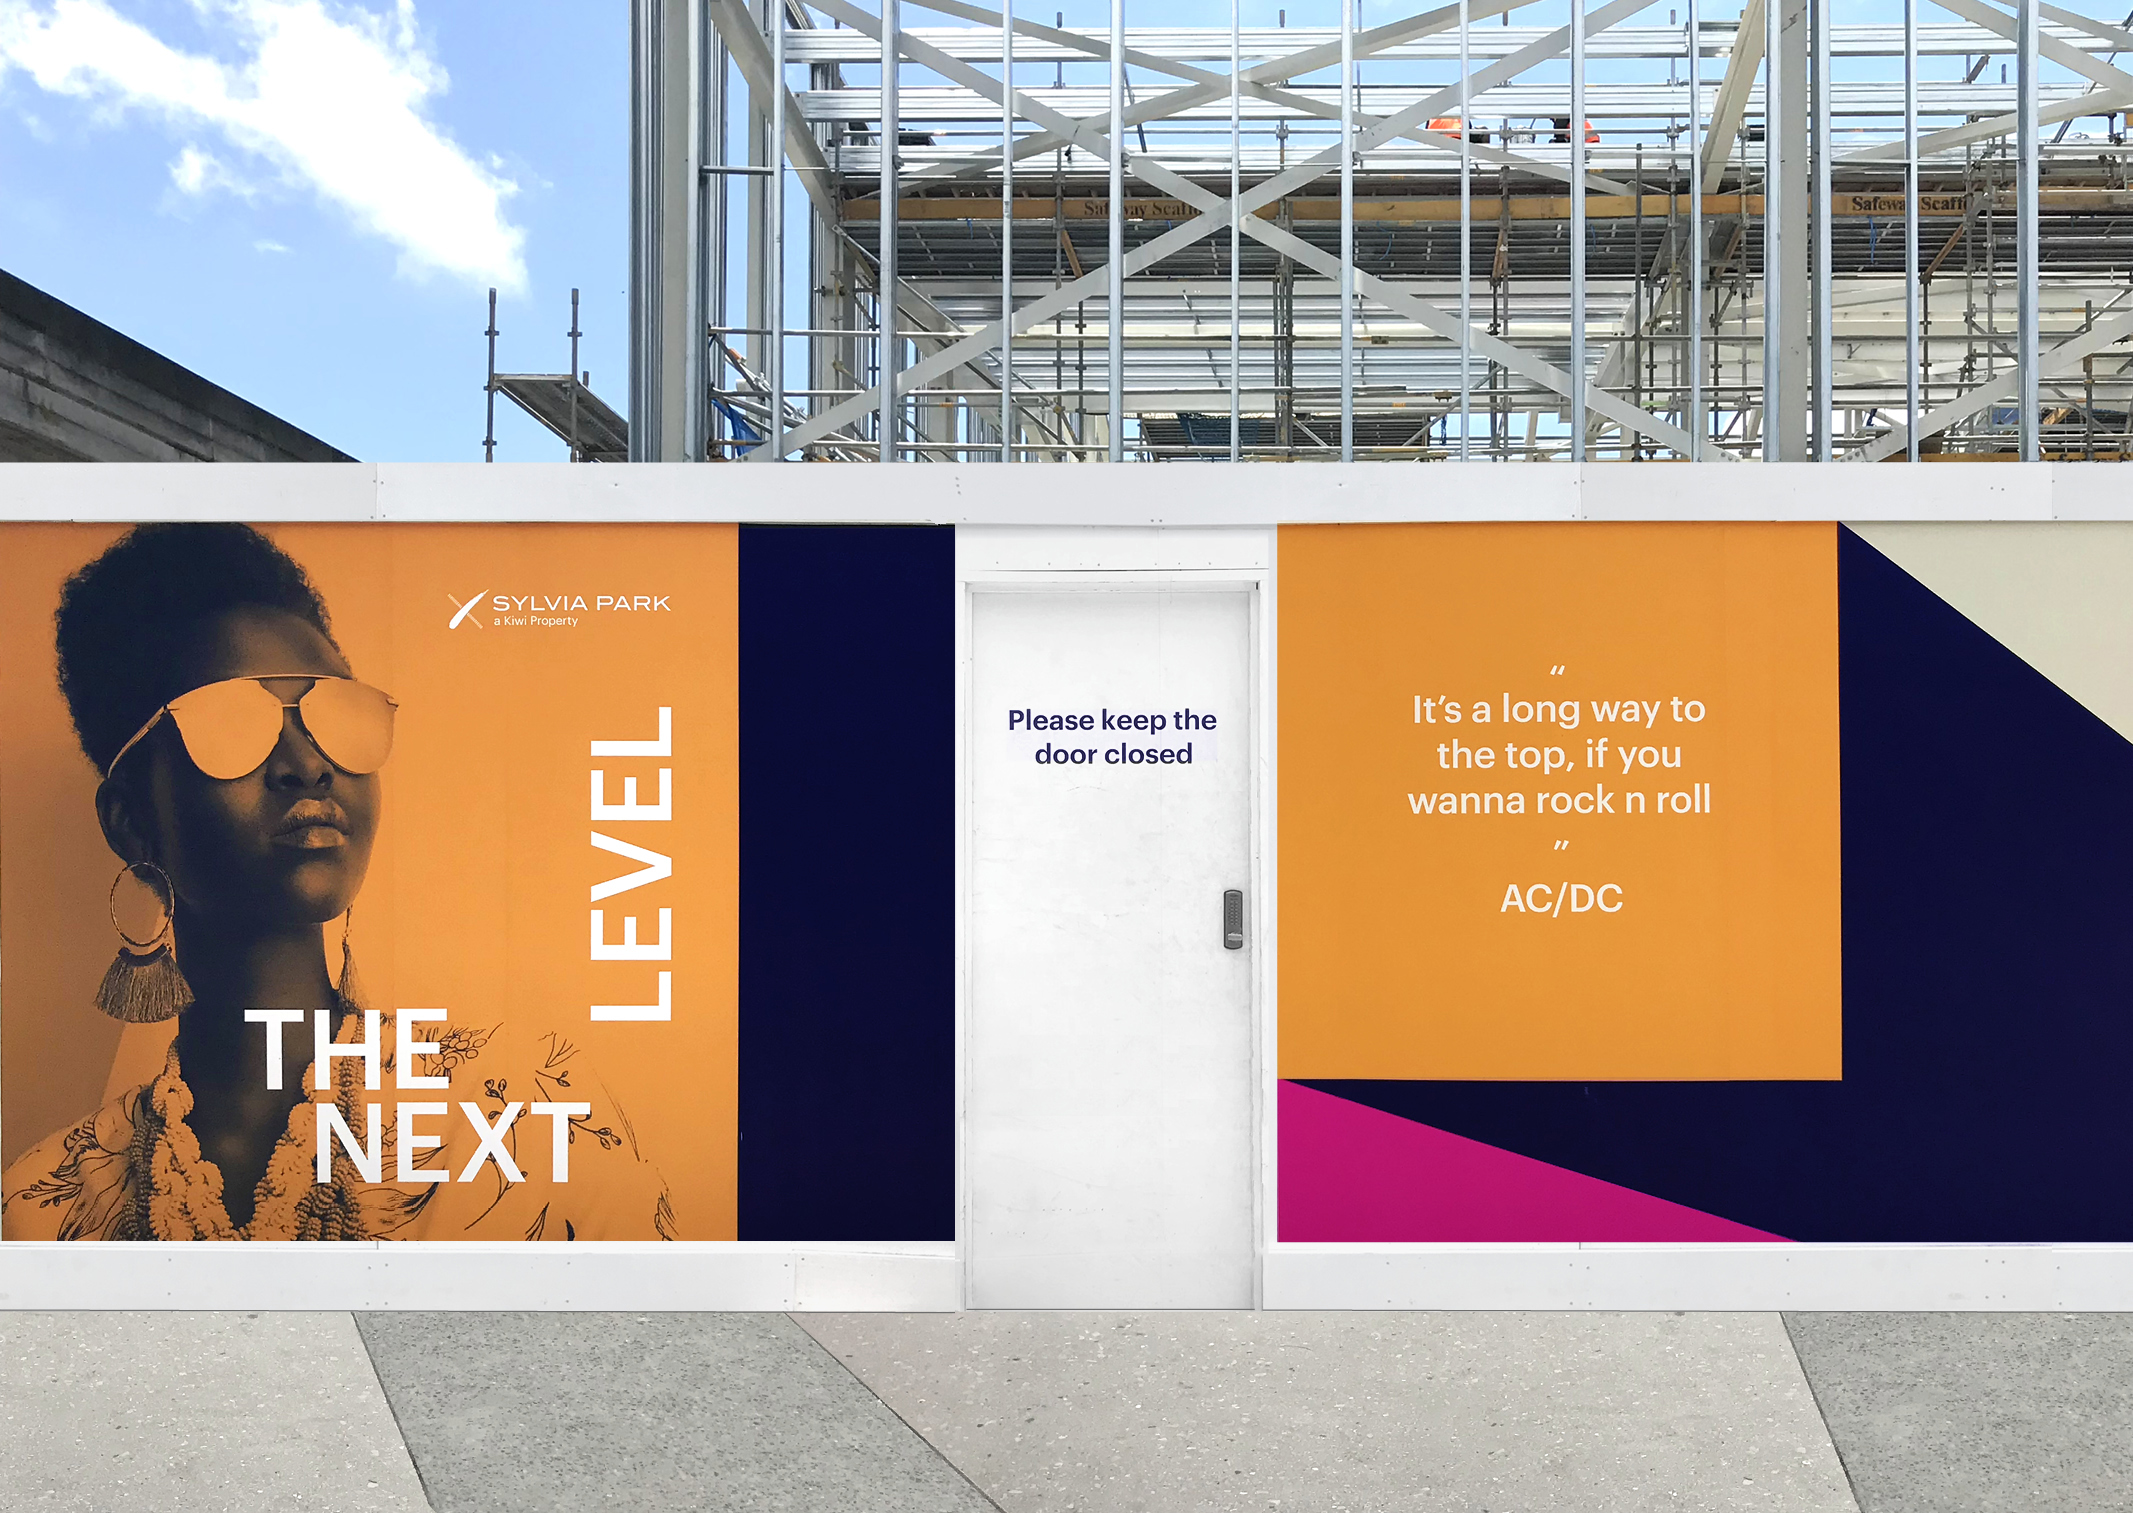 Close up of eye catching and sophisticated hoarding series for Sylvia Park Mall featuring Next Level Identifier brand in bright orange